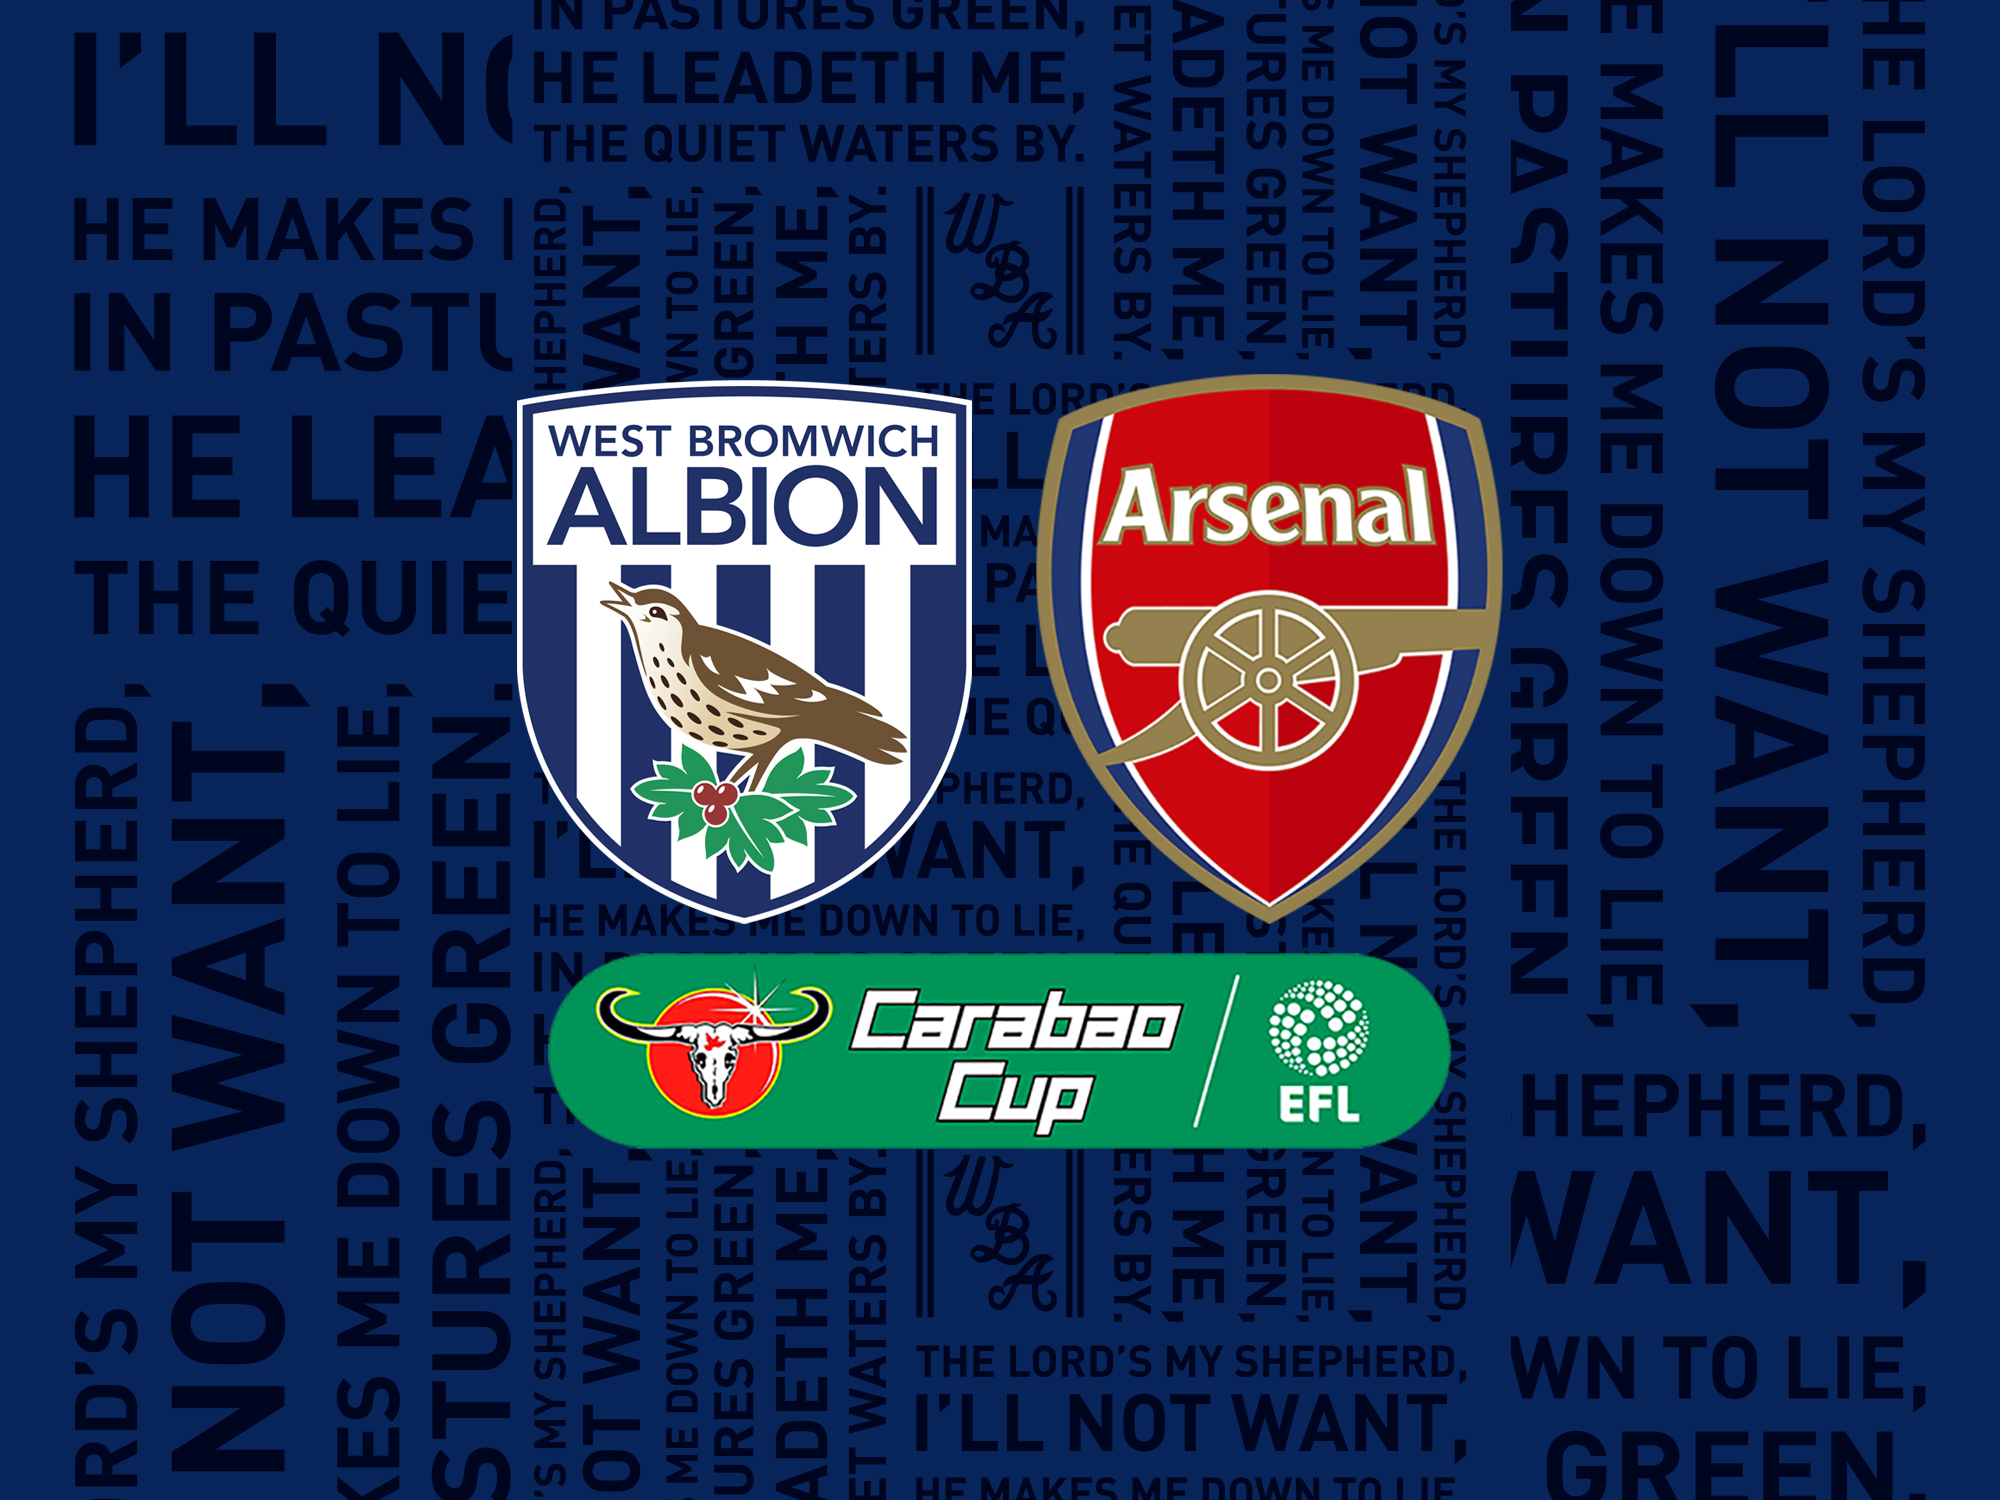 Ticket details for Carabao Cup clash with Arsenal   West Bromwich Albion